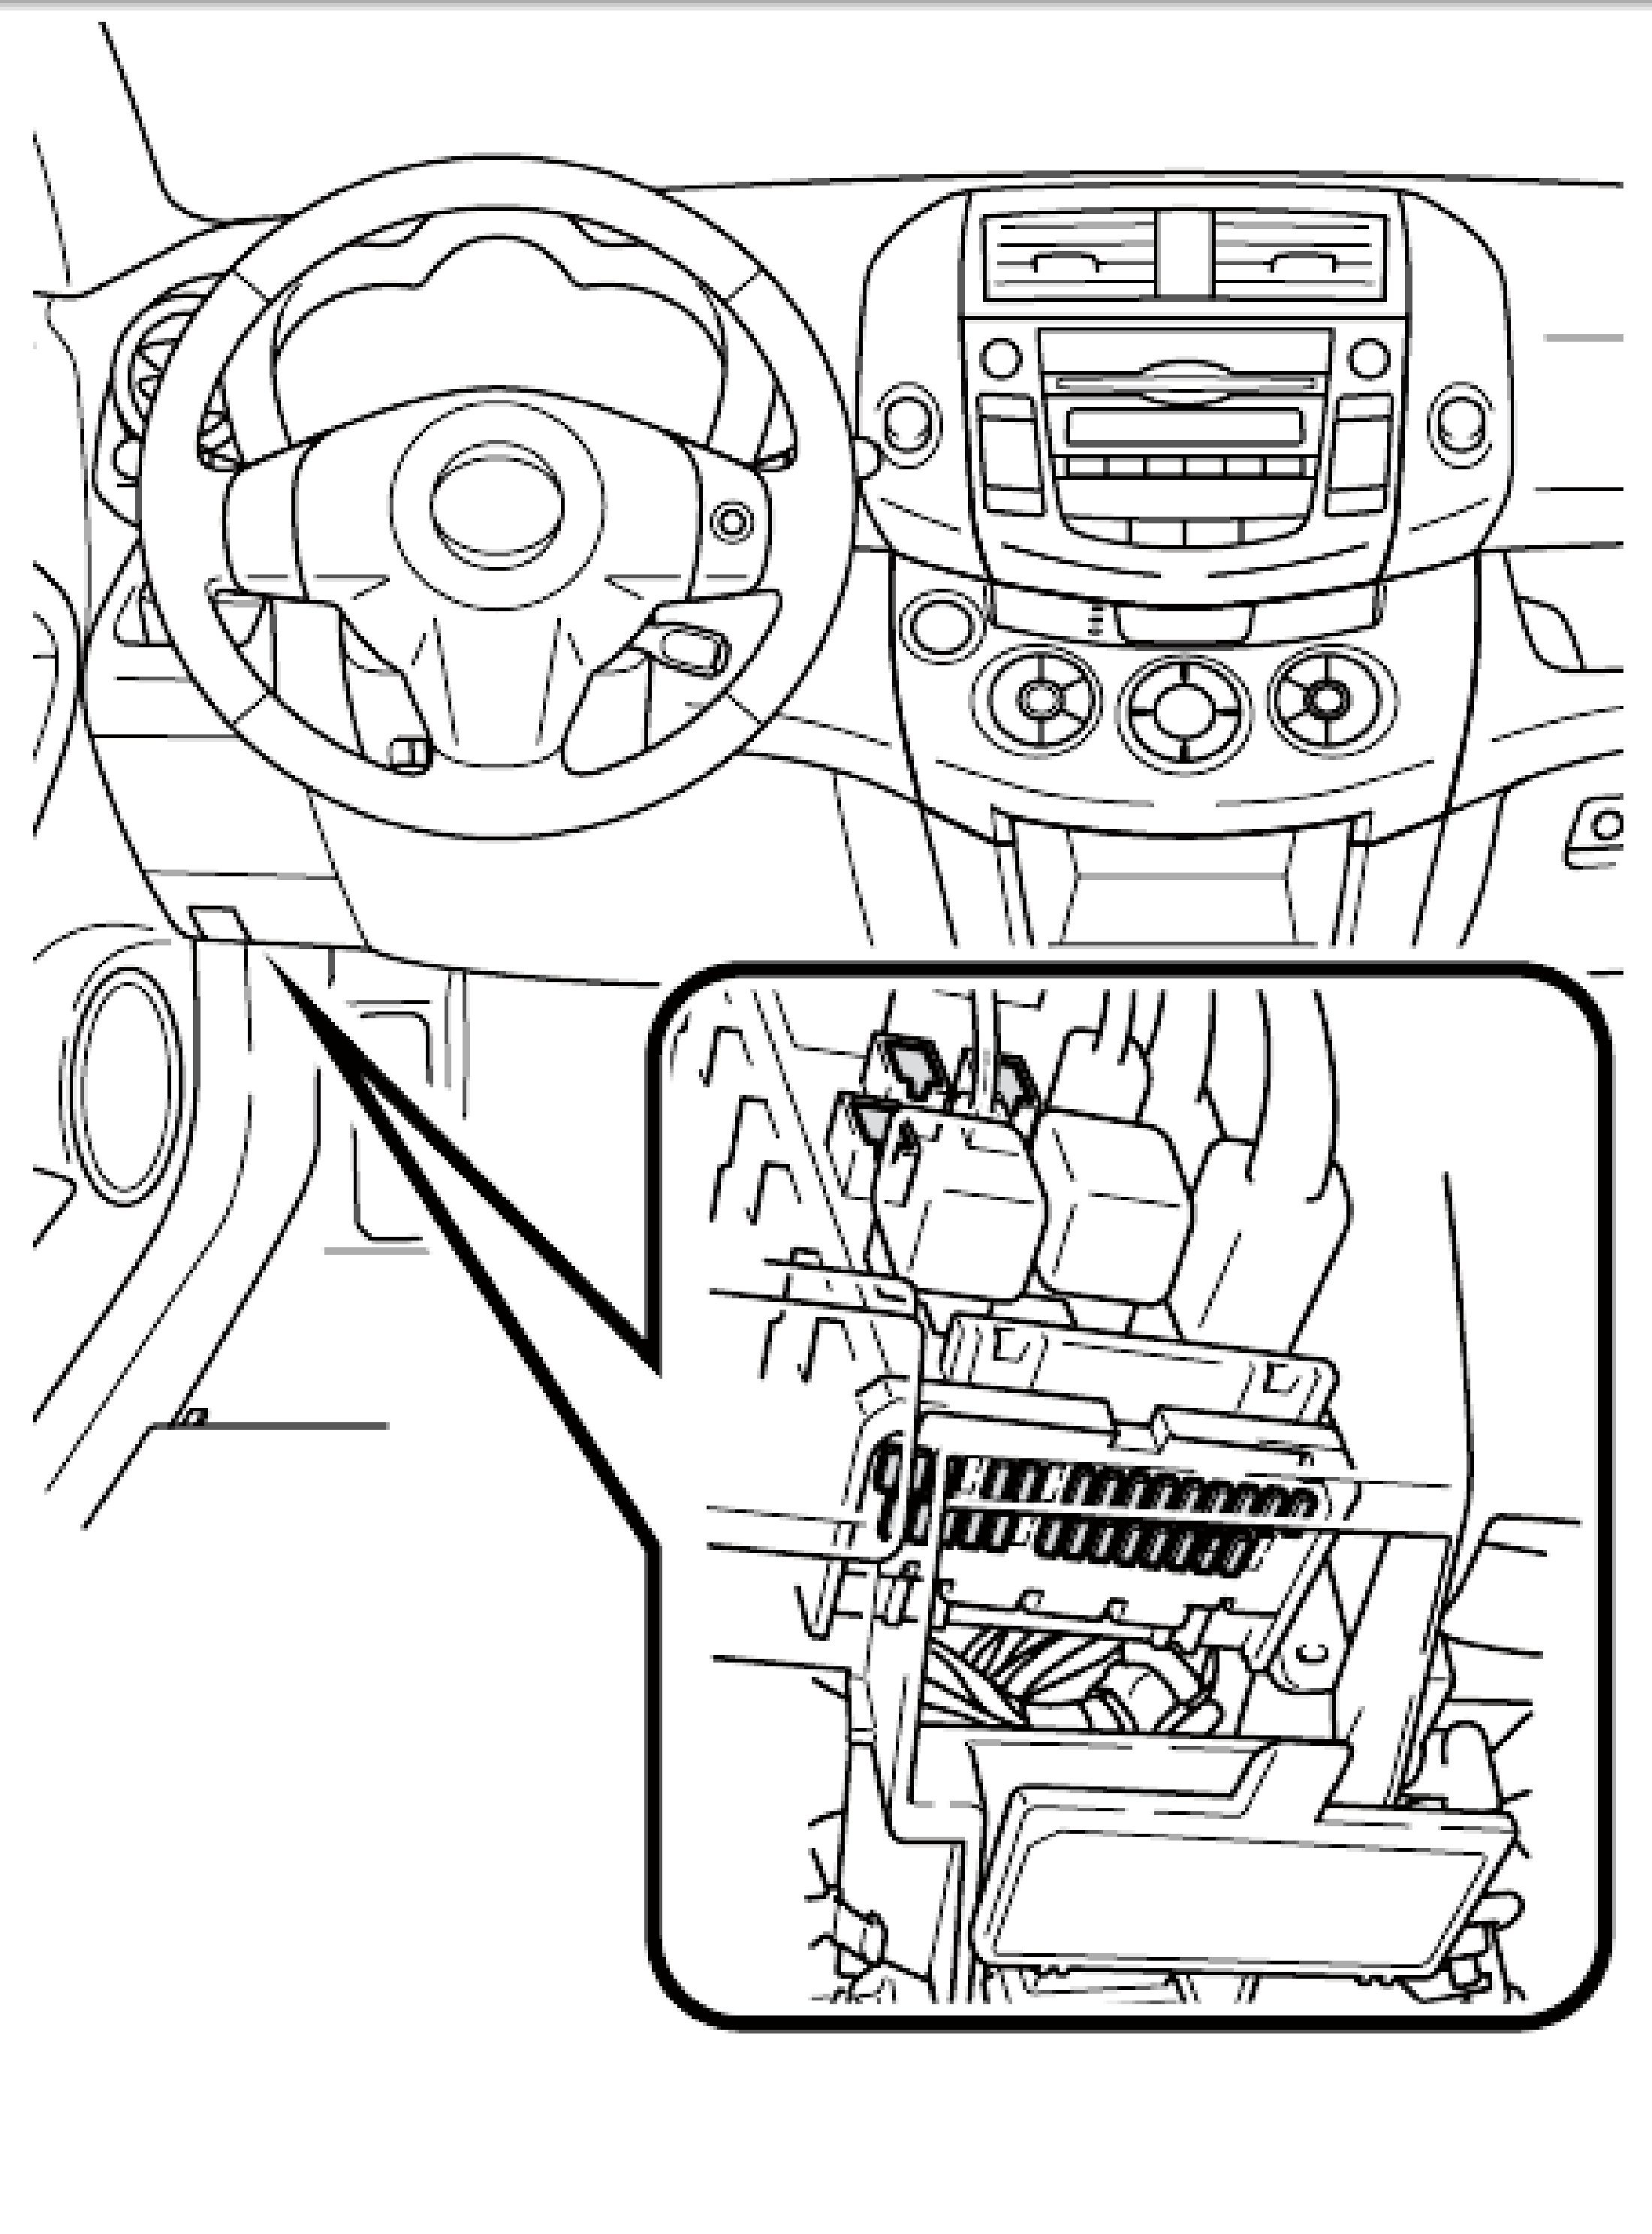 2002 Toyota Solara Fuse Box Location Trusted Wiring Diagram 2000 Sienna 2006 35 Images Catalytic Converter